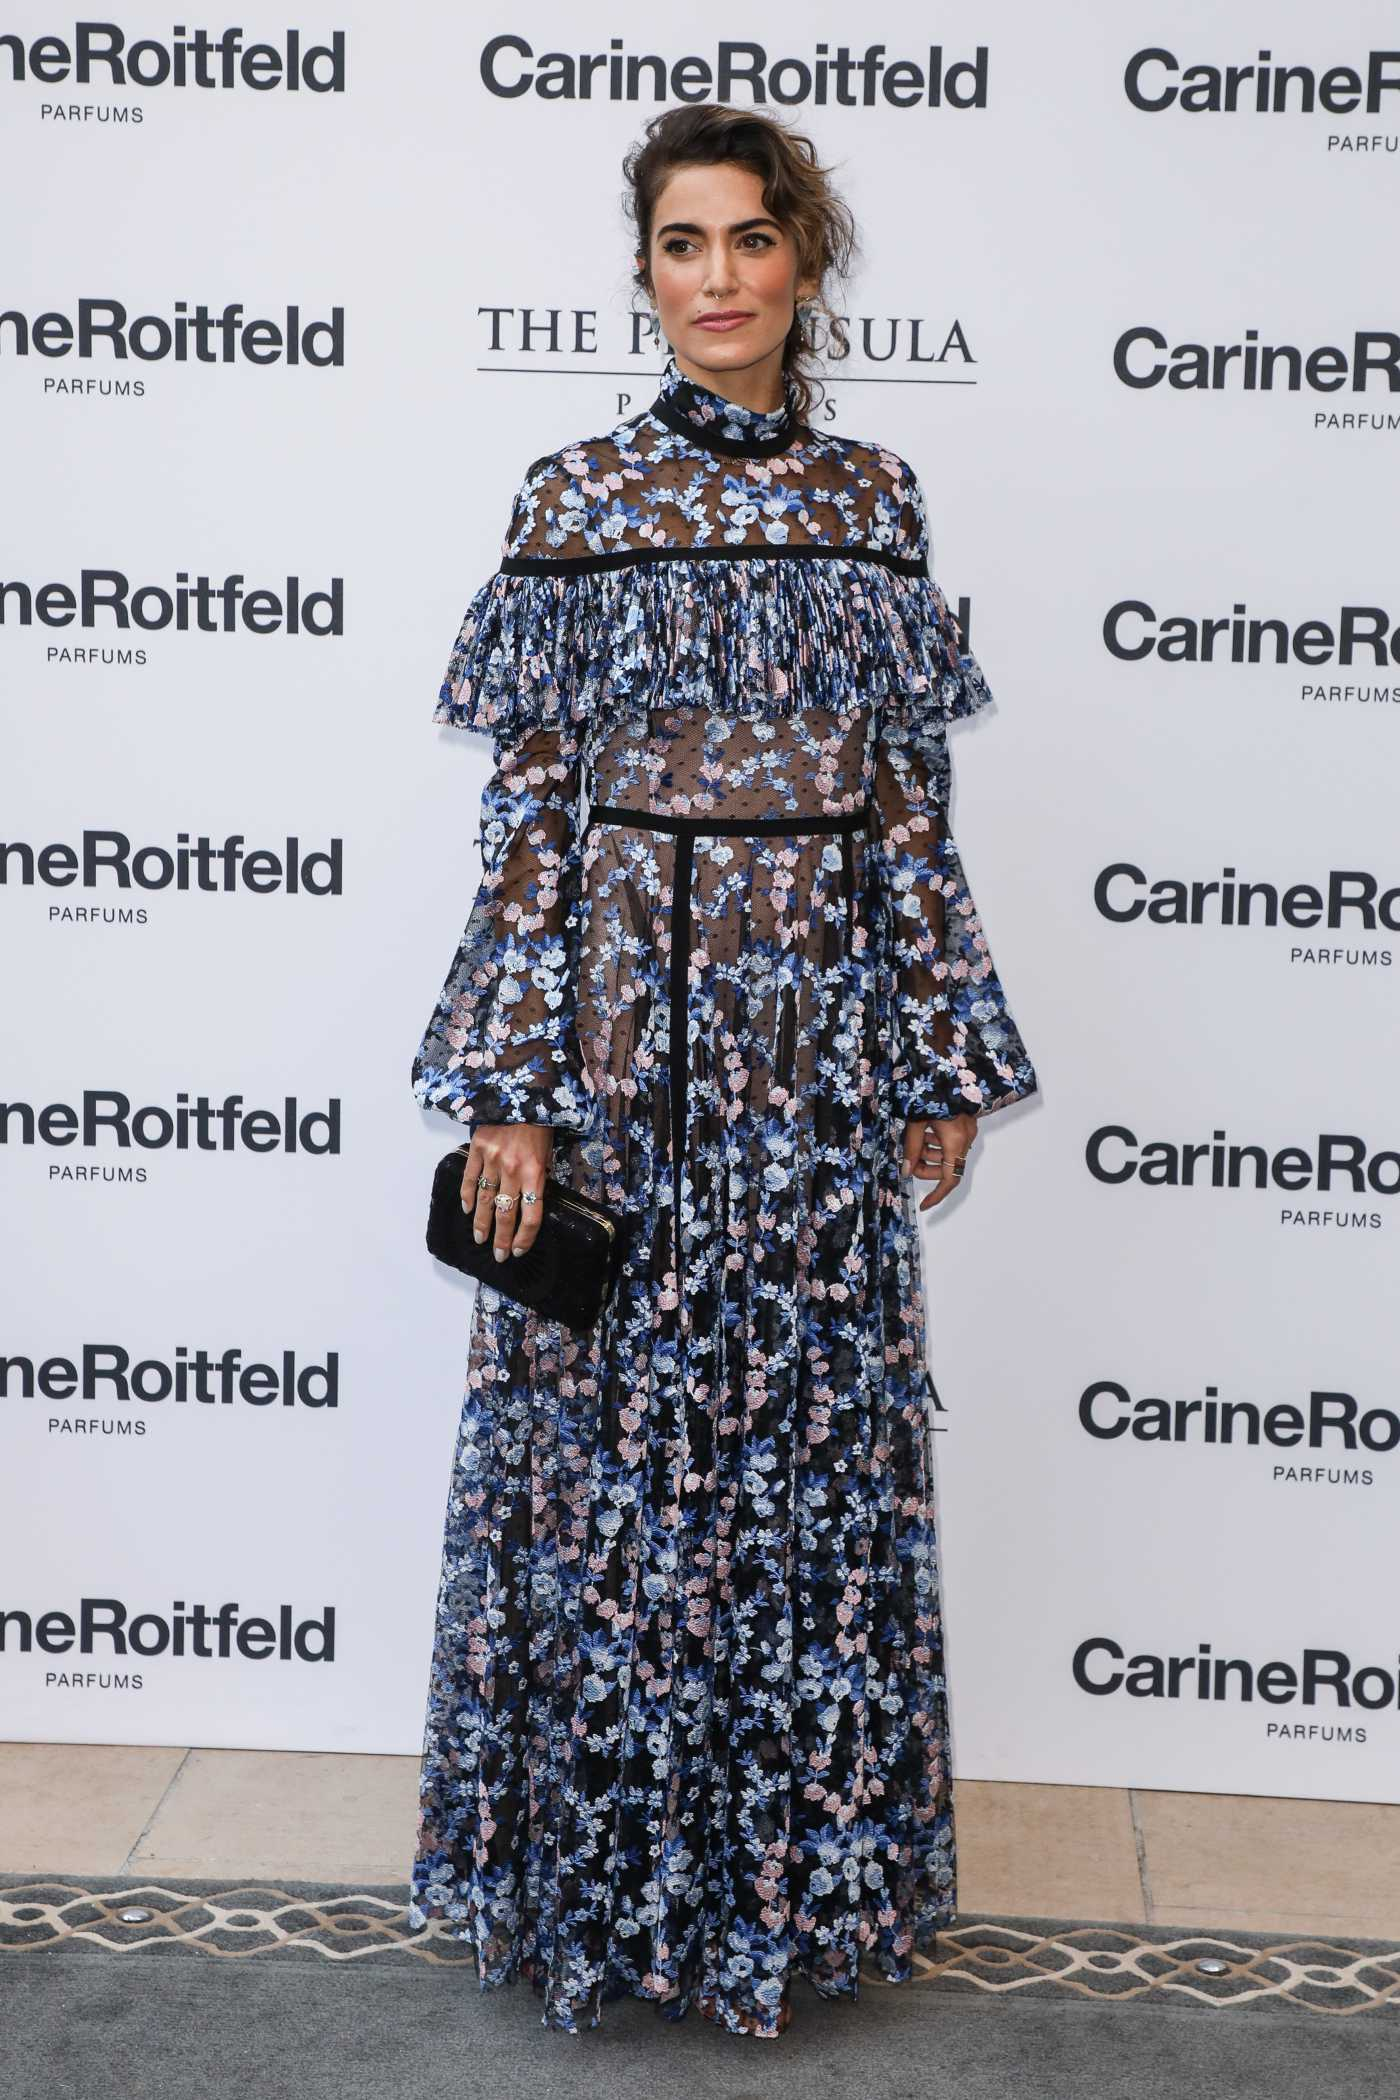 Nikki Reed Attends the Carine Roitfeld Parfums 7 Lovers Cocktail Party in Paris 07/01/2019